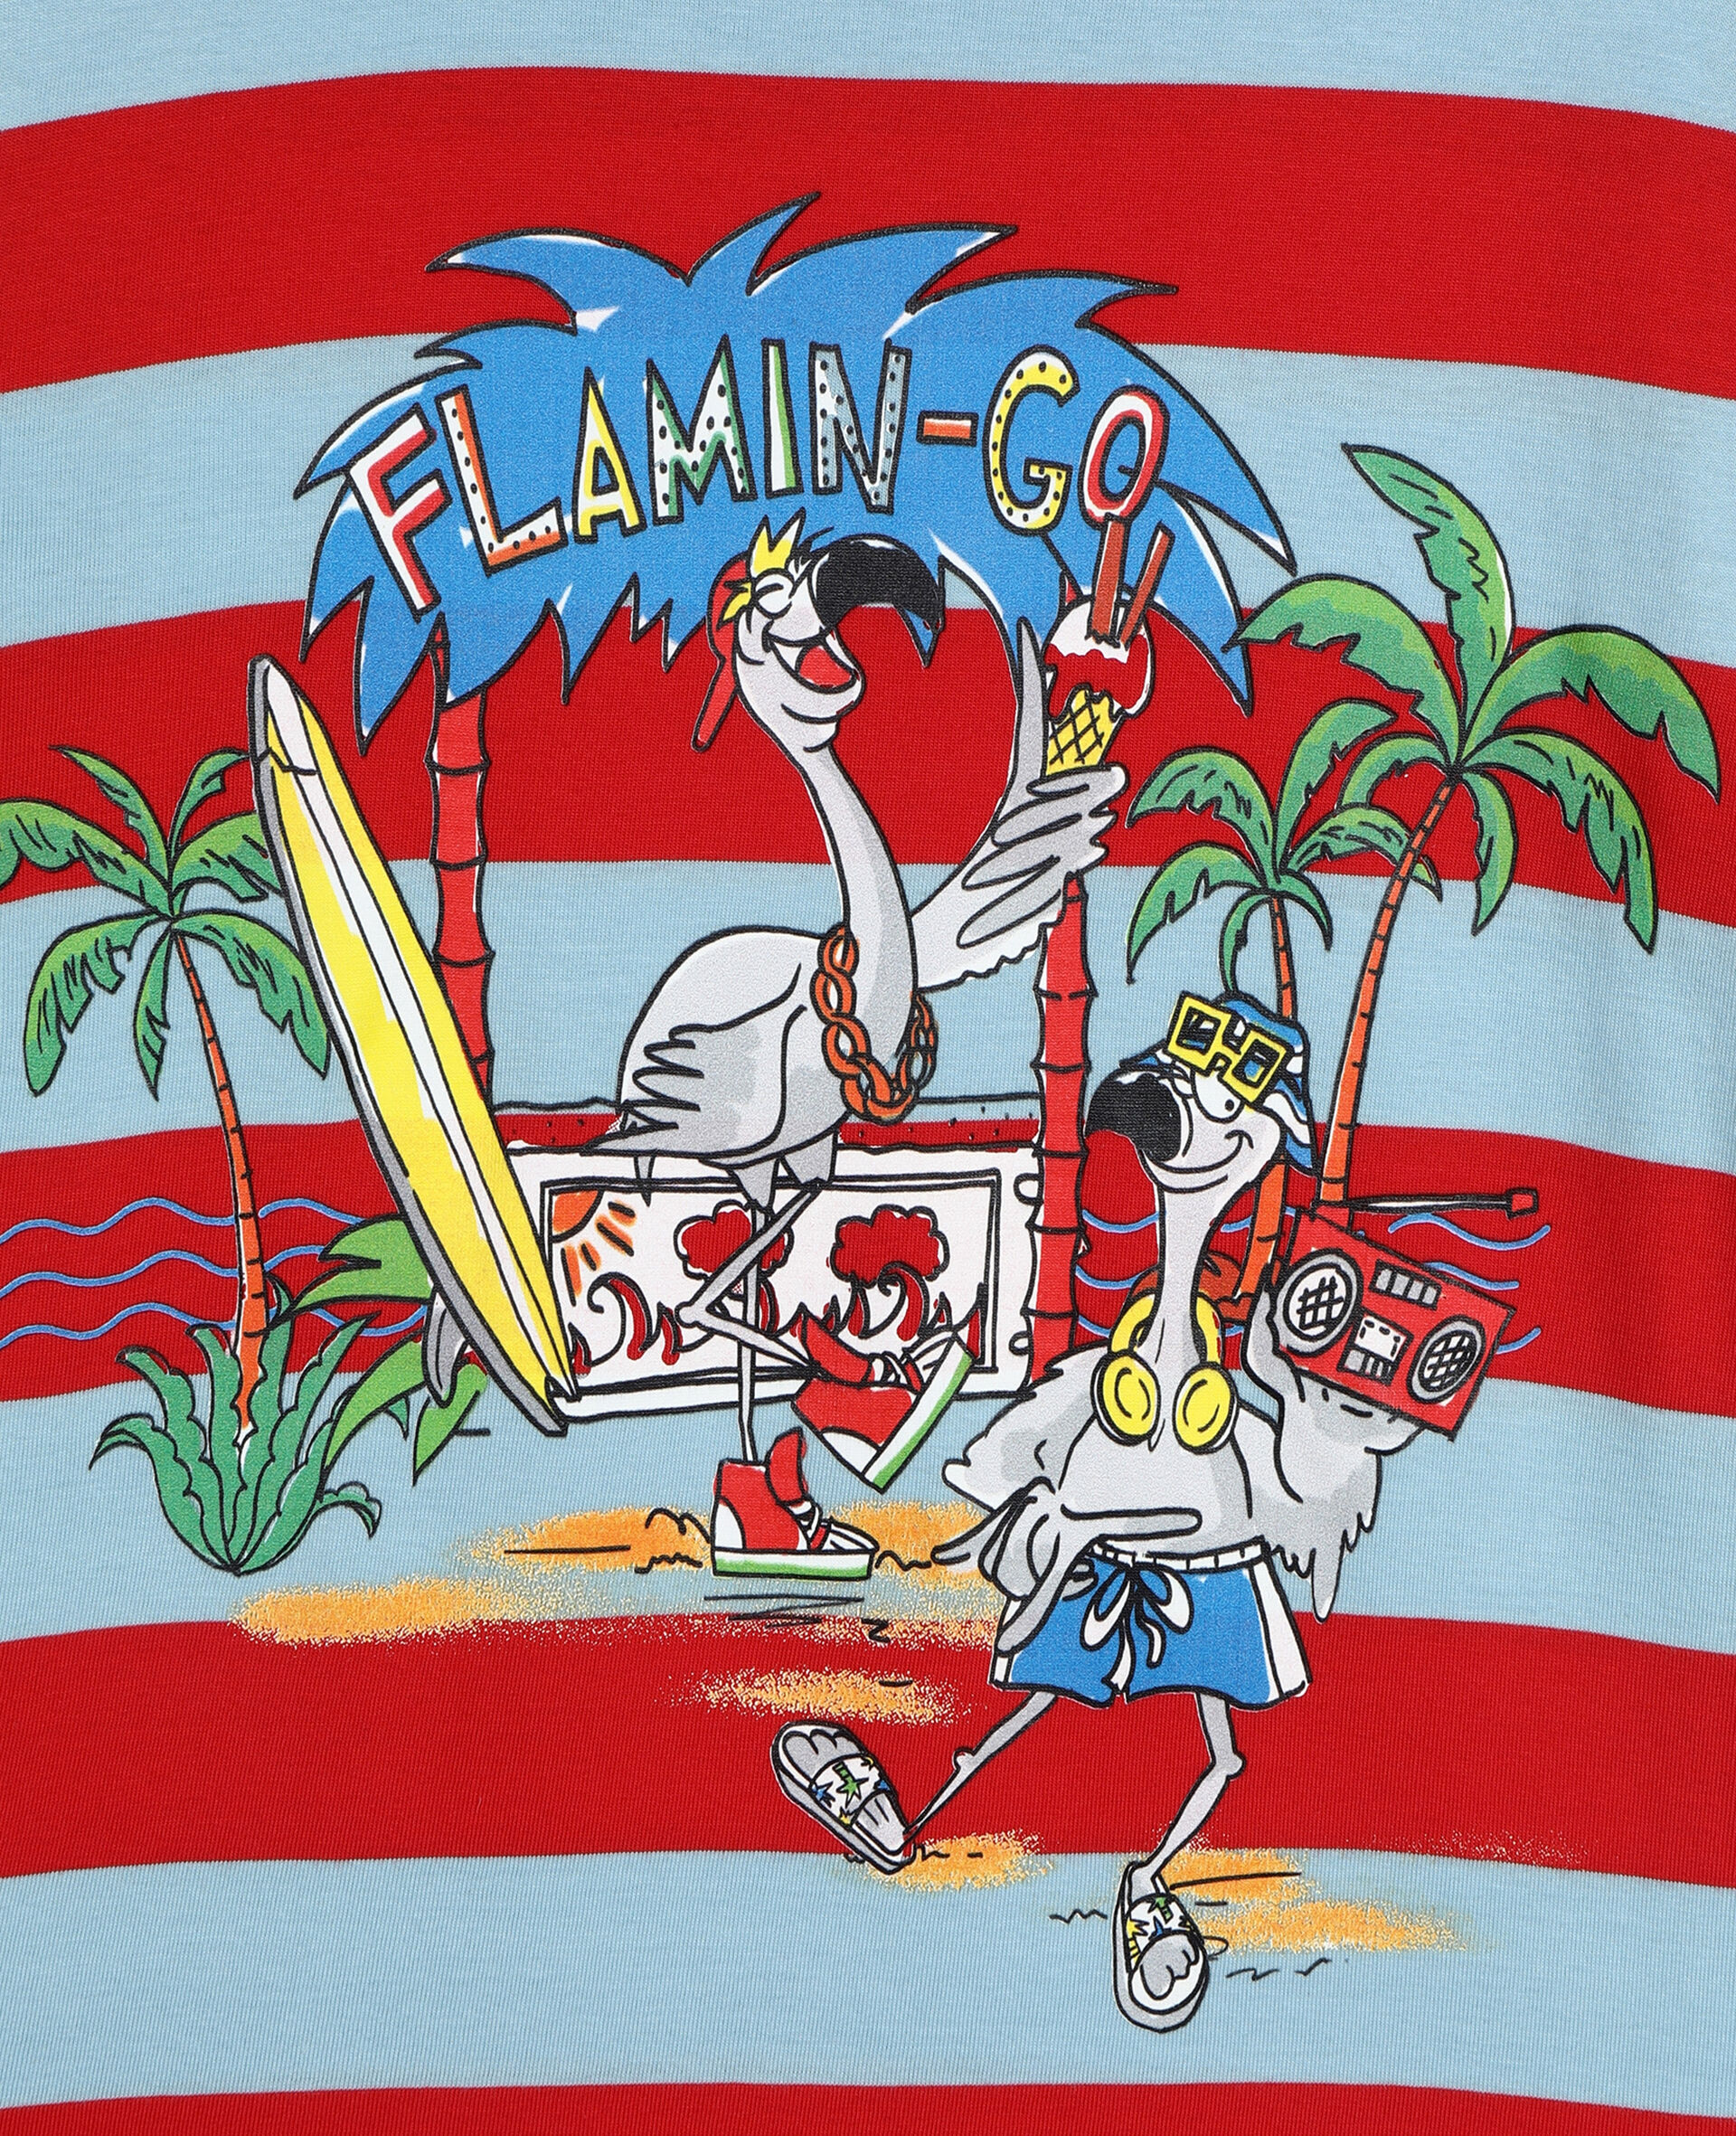 Flamingo Party Cotton T-shirt -Red-large image number 1